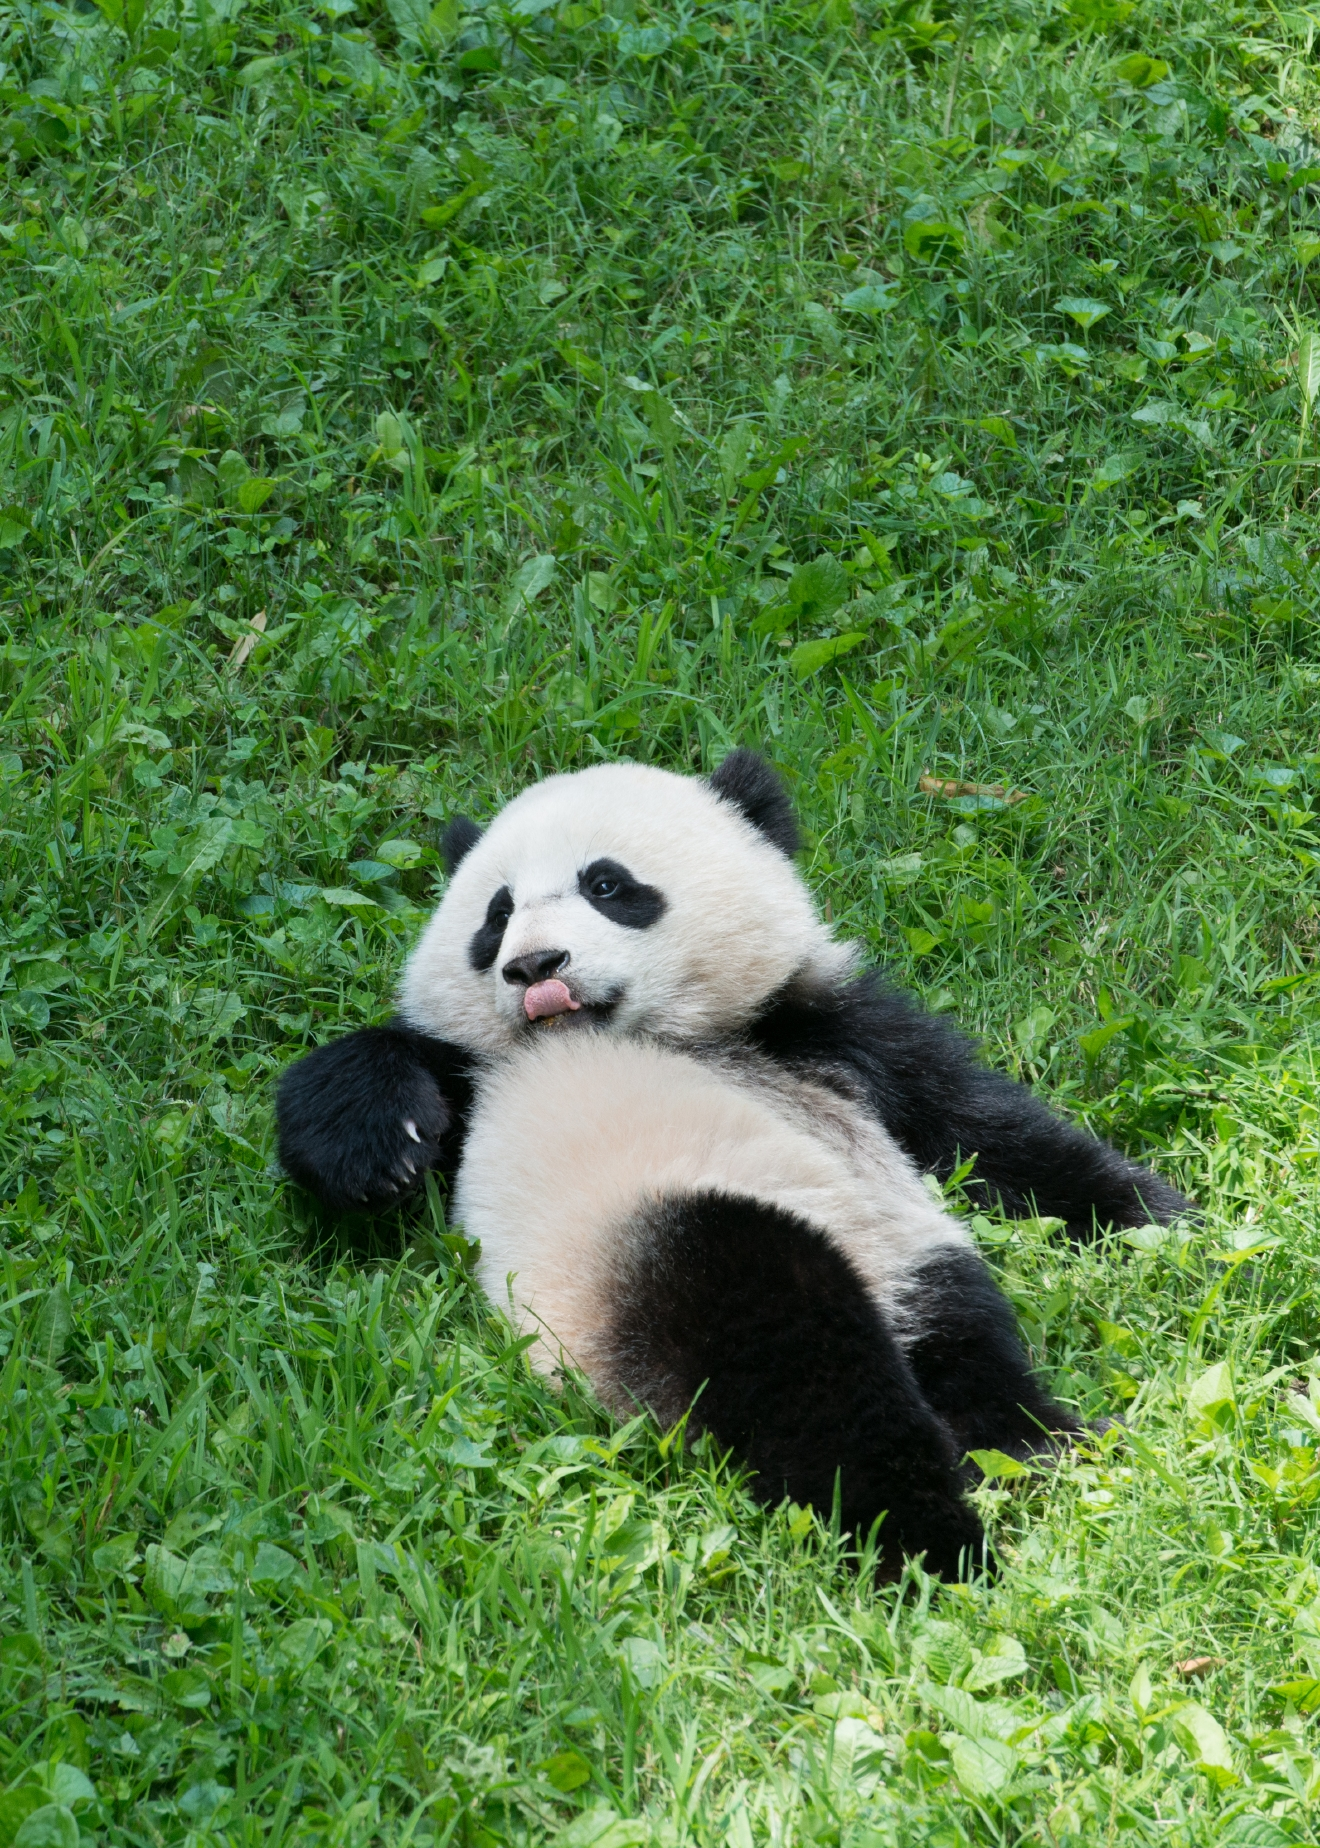 If there's anything that will unite all of D.C. it's our love for these fuzzy, tumbling, bamboo-loving little cuties! To celebrate the greatest national day we have heard of yet -- and yes, that's totally an objective opinion -- we rounded up a few of our favorite photos we've amassed of D.C.'s First (Panda) Family: Tian Tian, Mei Xiang, Bao Bao (WE MISS YOU!) and little Bei Bei! We hear there could be another panda cub in the future (Mei Xiang was artificially inseminated earlier this month), so stay tuned and enjoy!{ } (Image: Courtesy Abby Wood/Smithsonian's National Zoo)